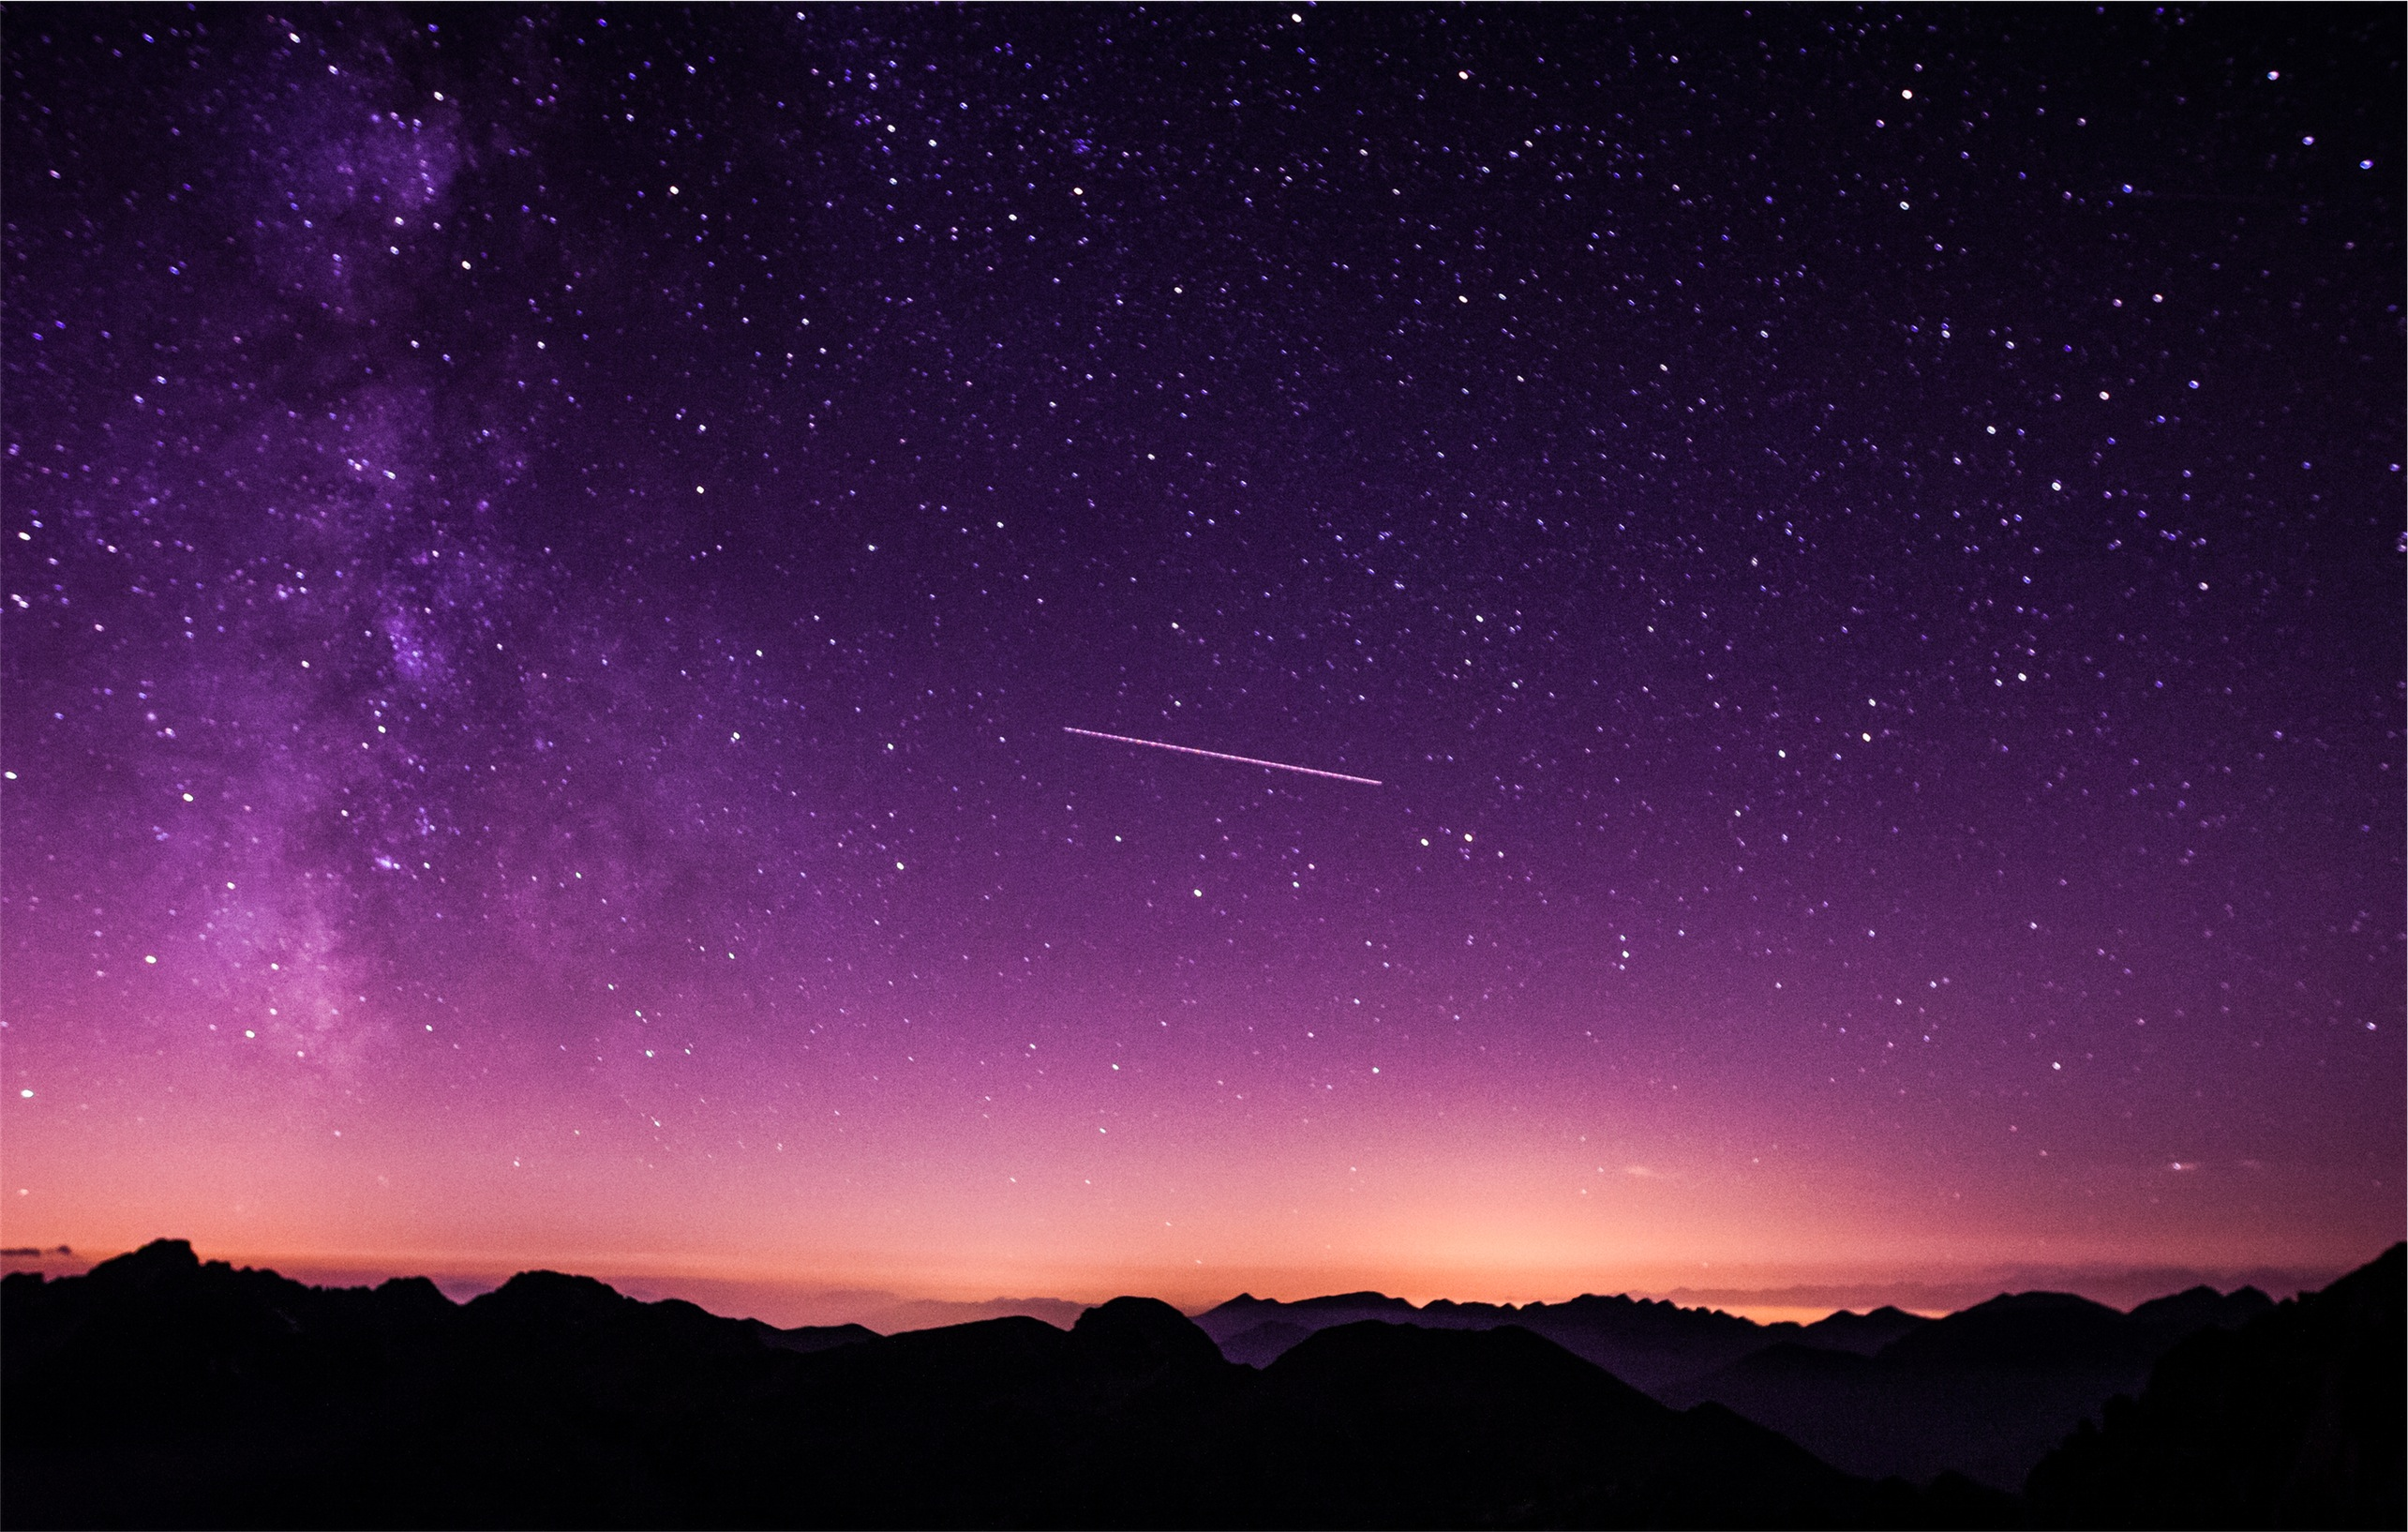 480x854 shooting stars in purple sky android one hd 4k wallpapers